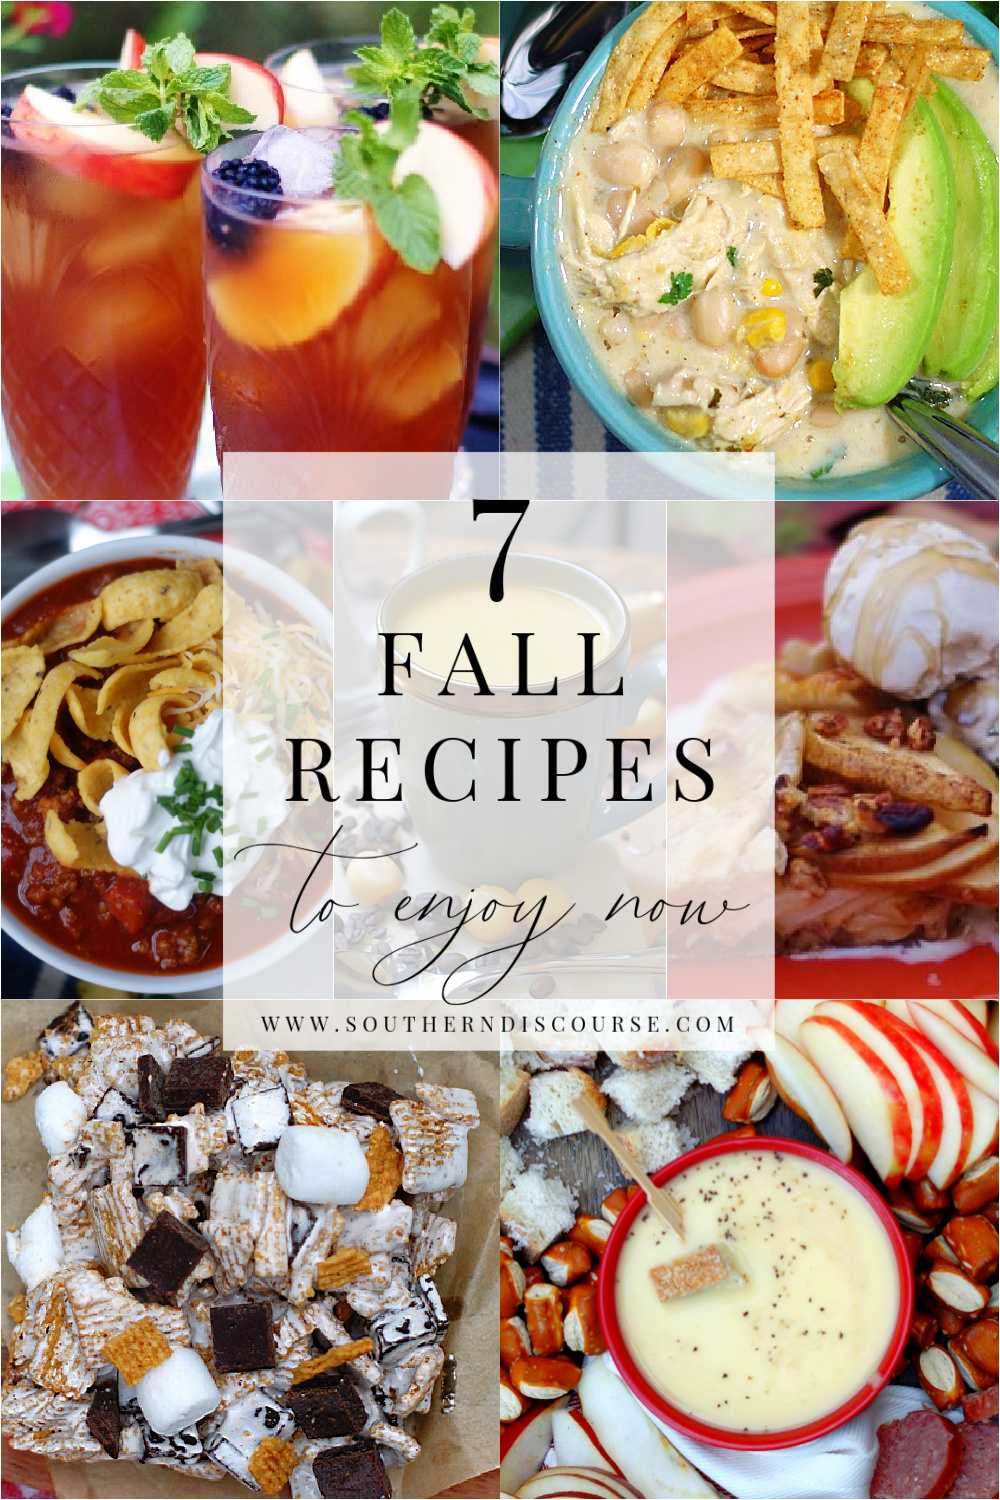 Looking for ways to sneak a little fall into your life?  You're in luck!  This week's Saturday Seven has everything from early fall drinks, snacks, desserts, even dinners that embrace everything you love about autumn without rushing the seasons!